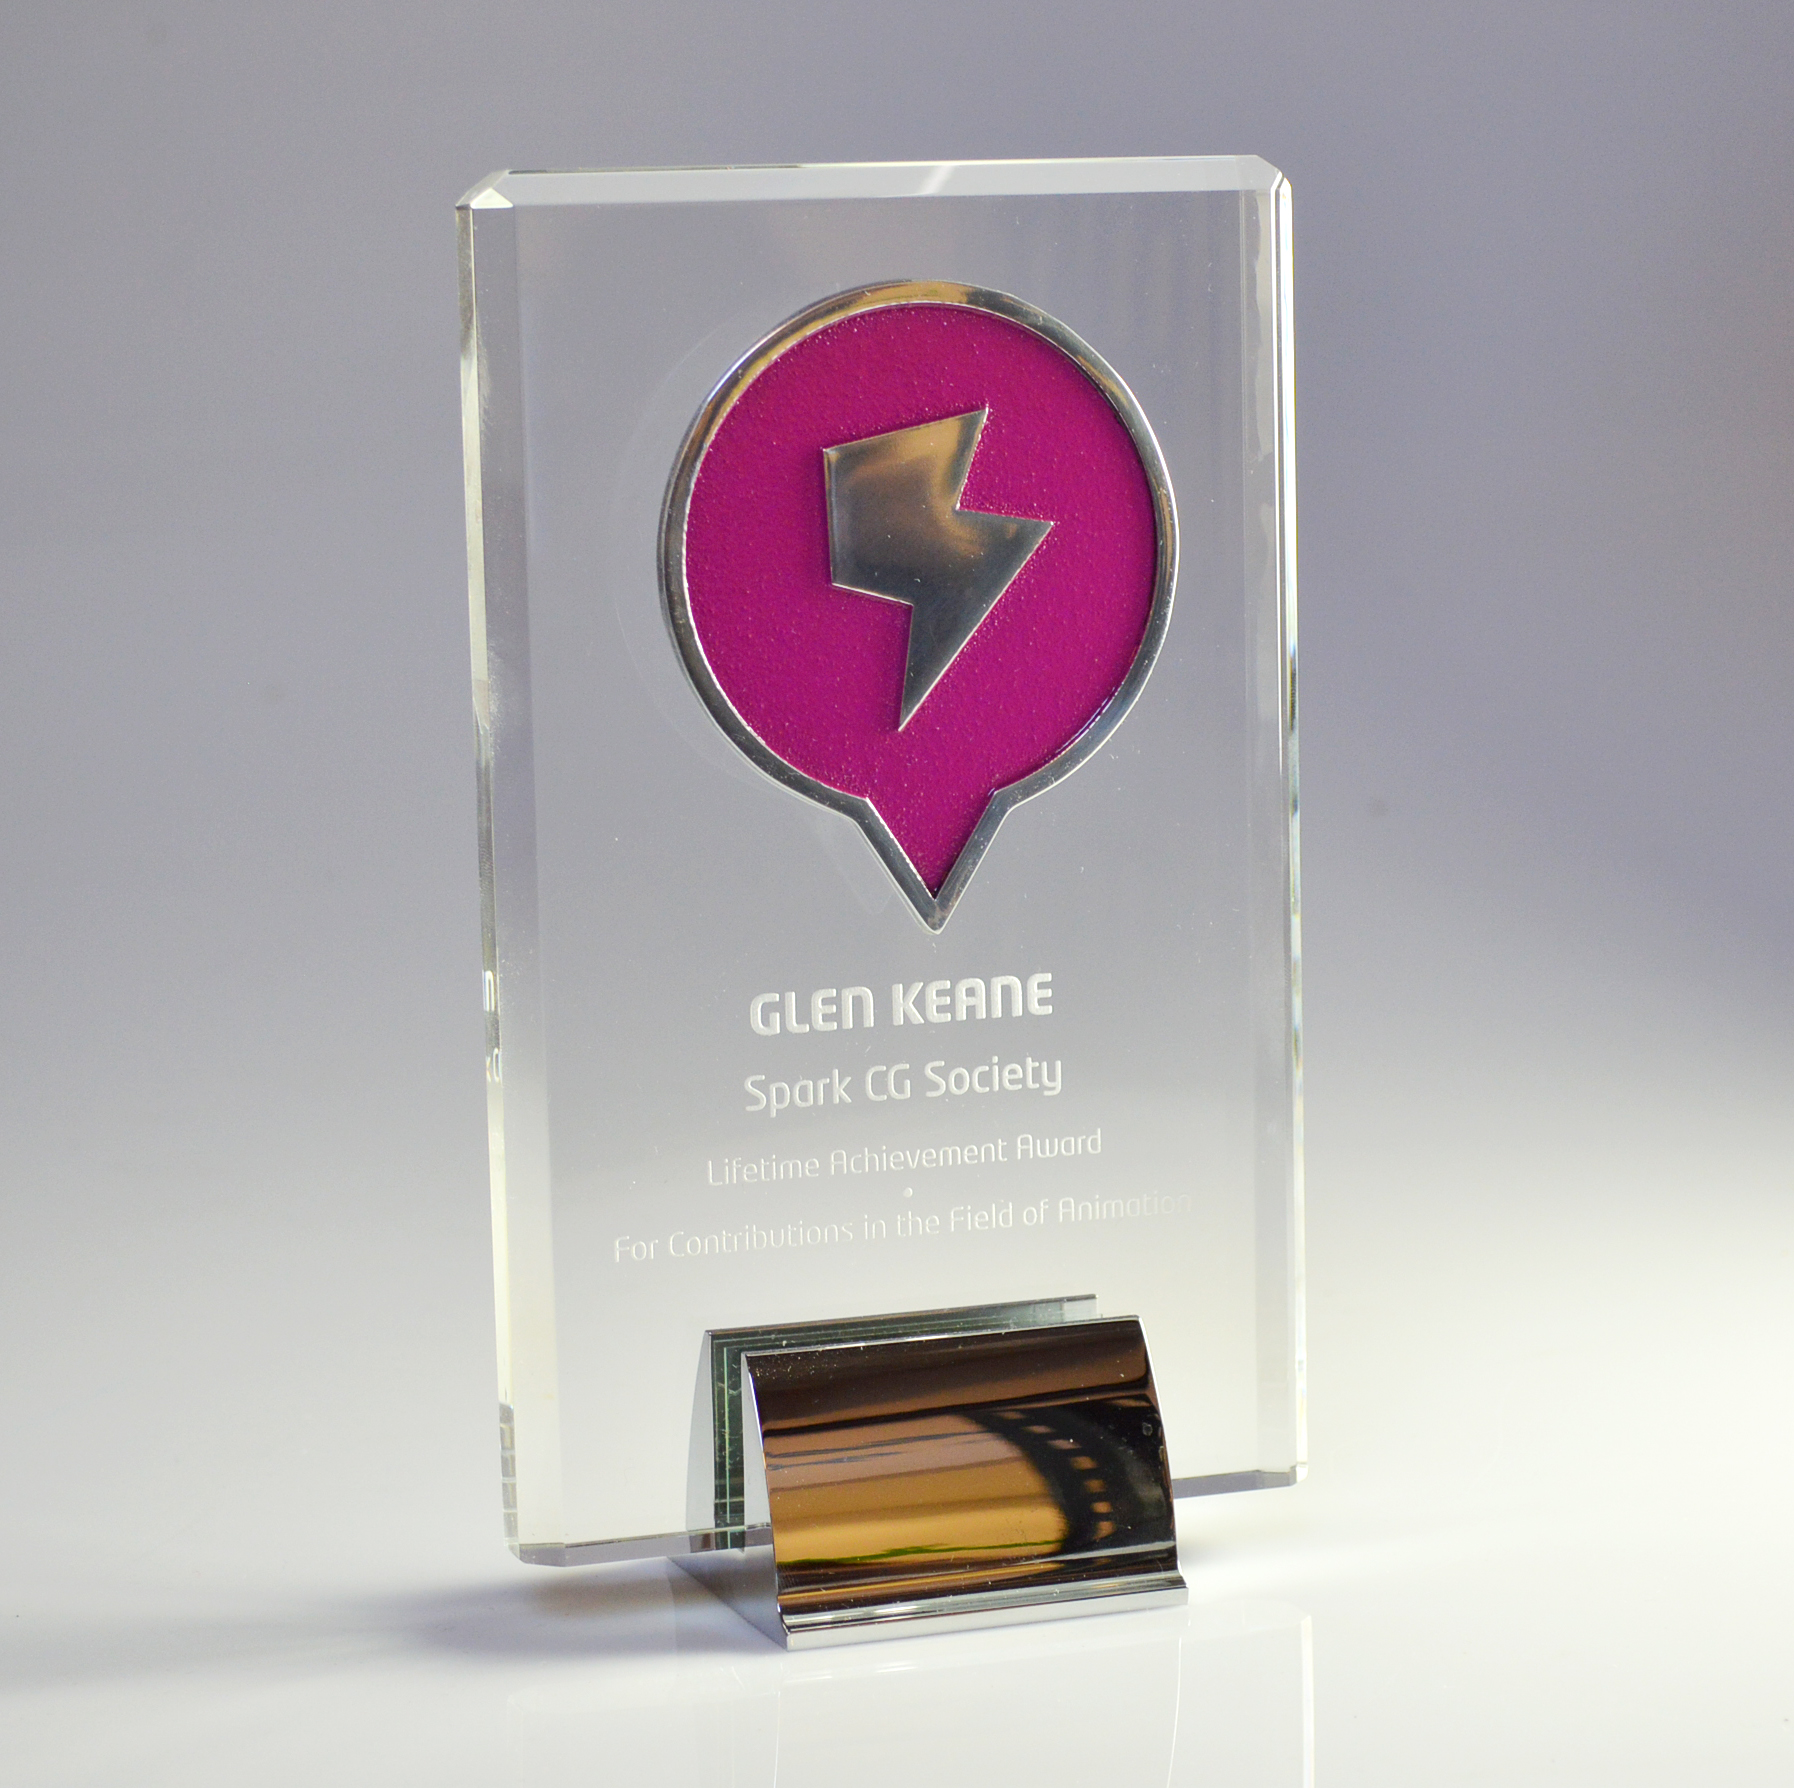 custom-awards_customized_glass-chrome_desktop-award_aluminum-medallion_corporate_anniversary_recognition-award_canada